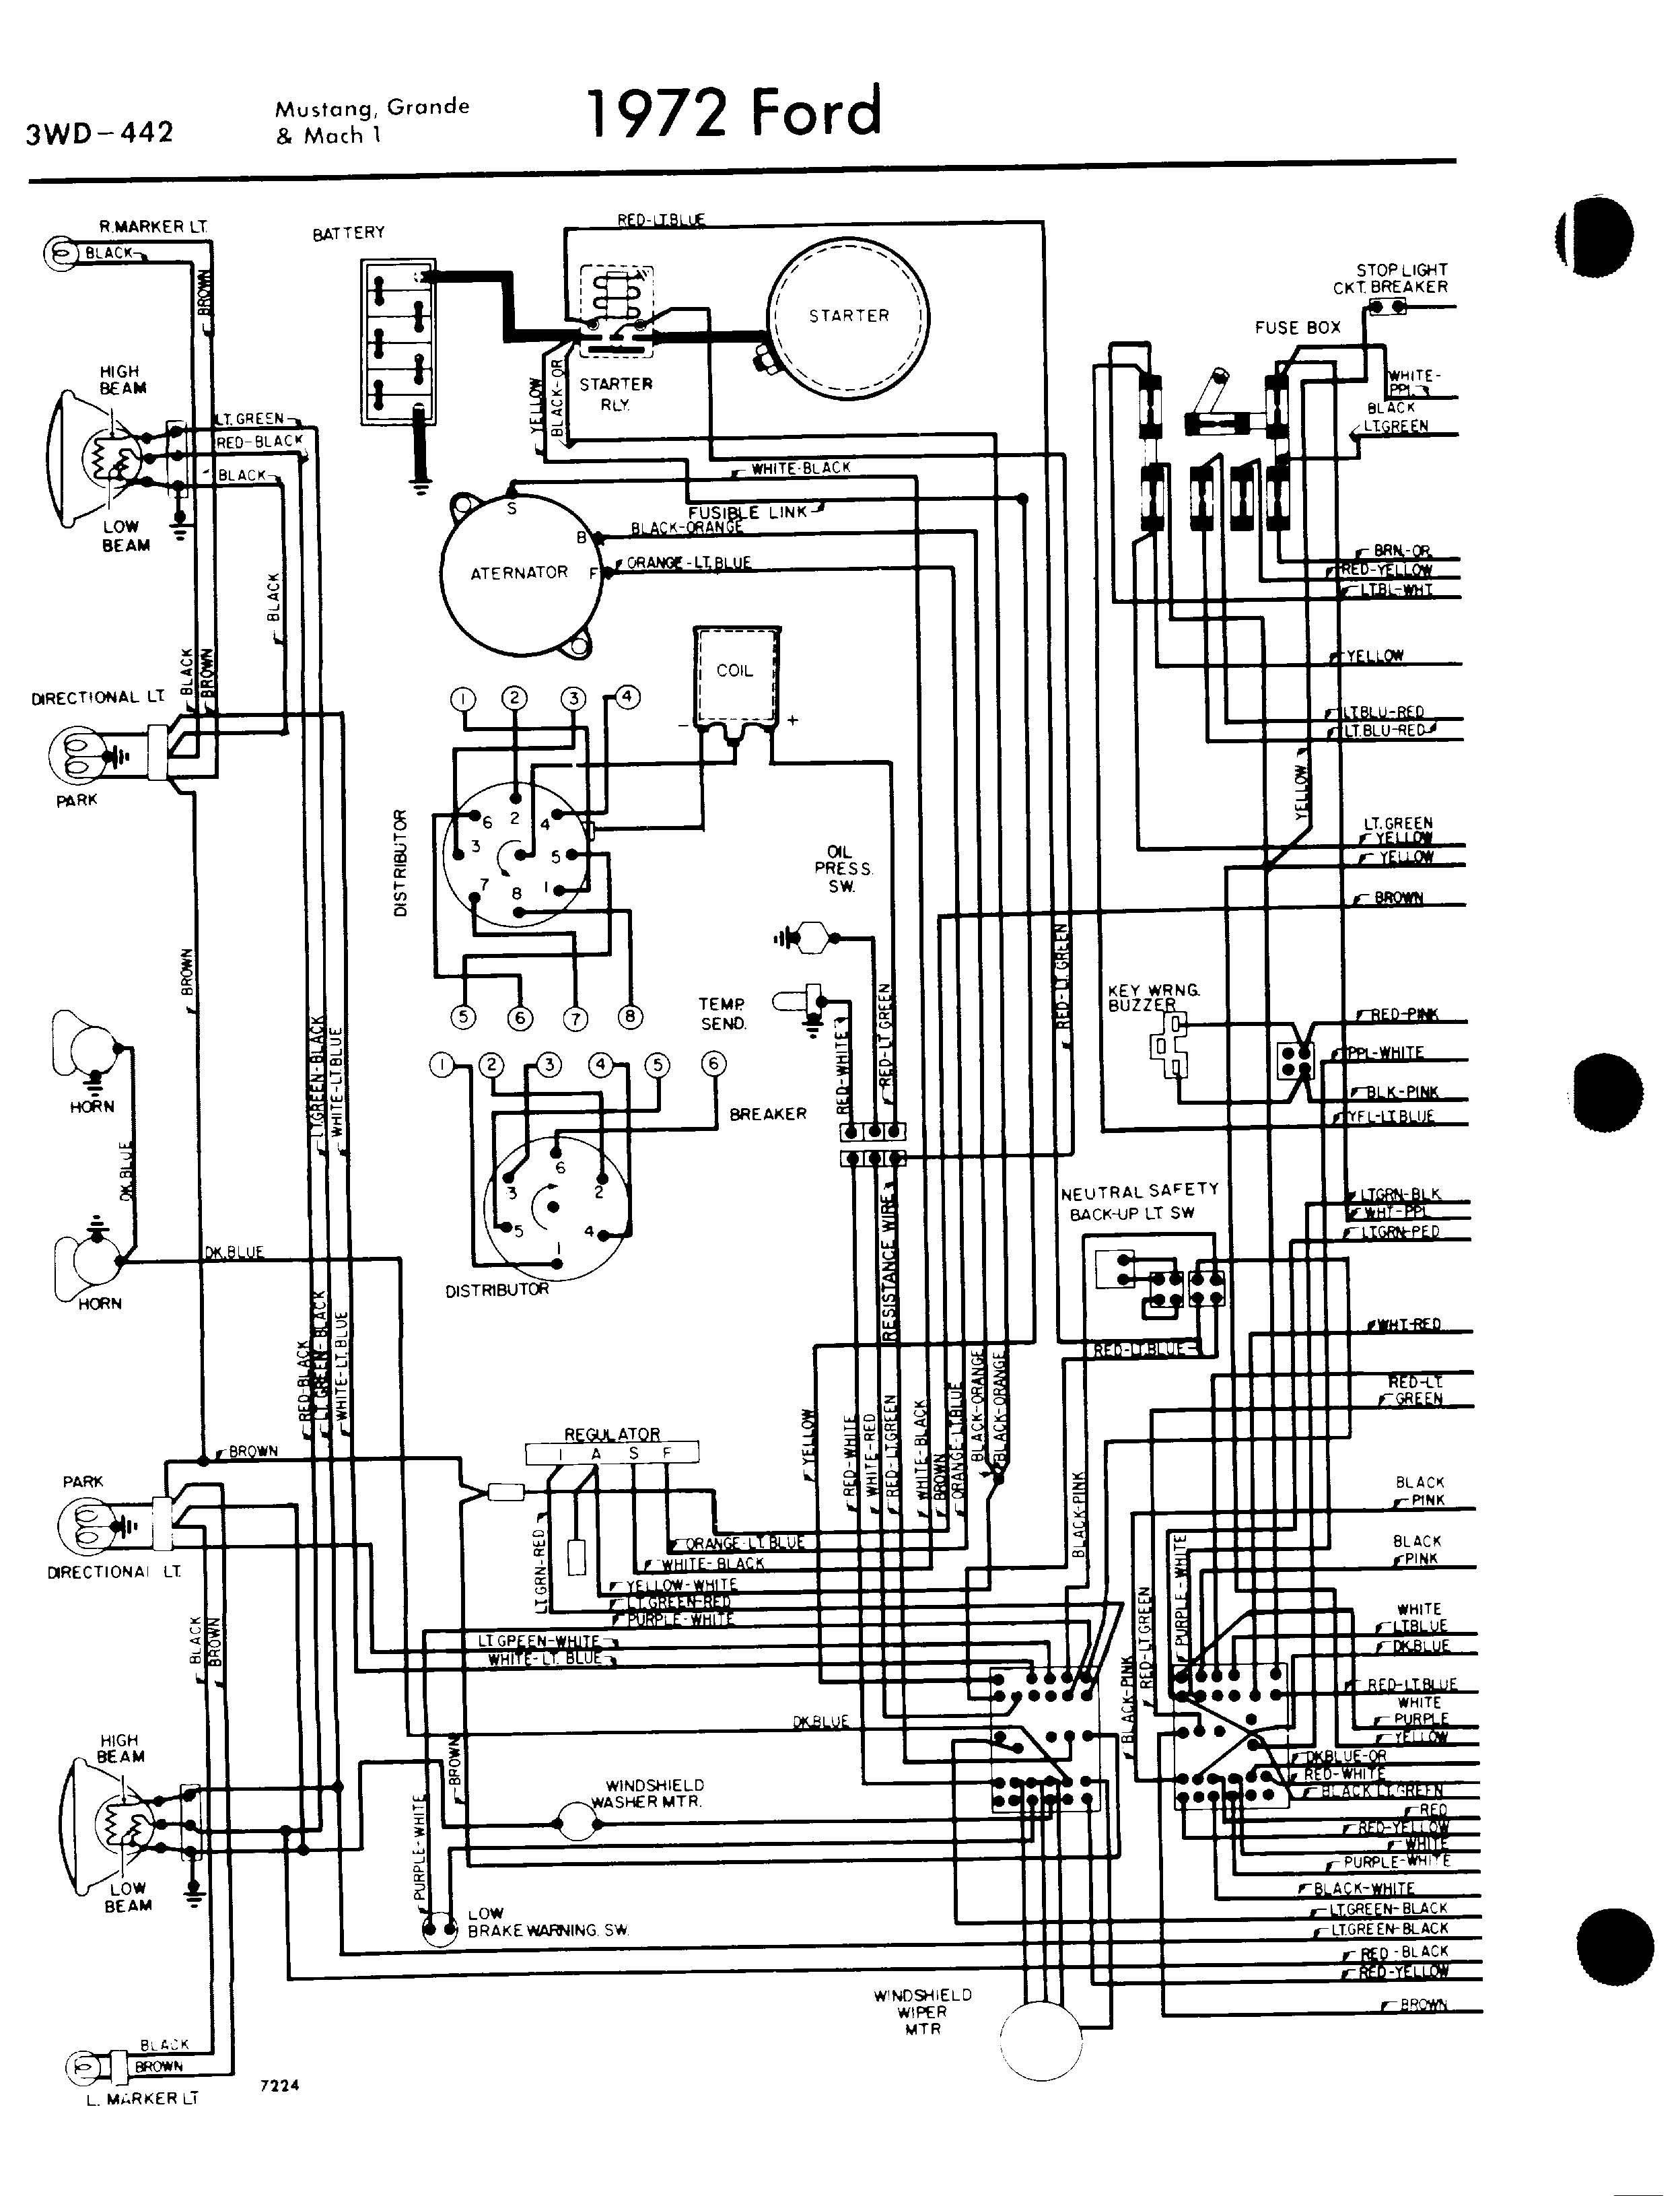 1972 Chevrolet Wiring Diagram